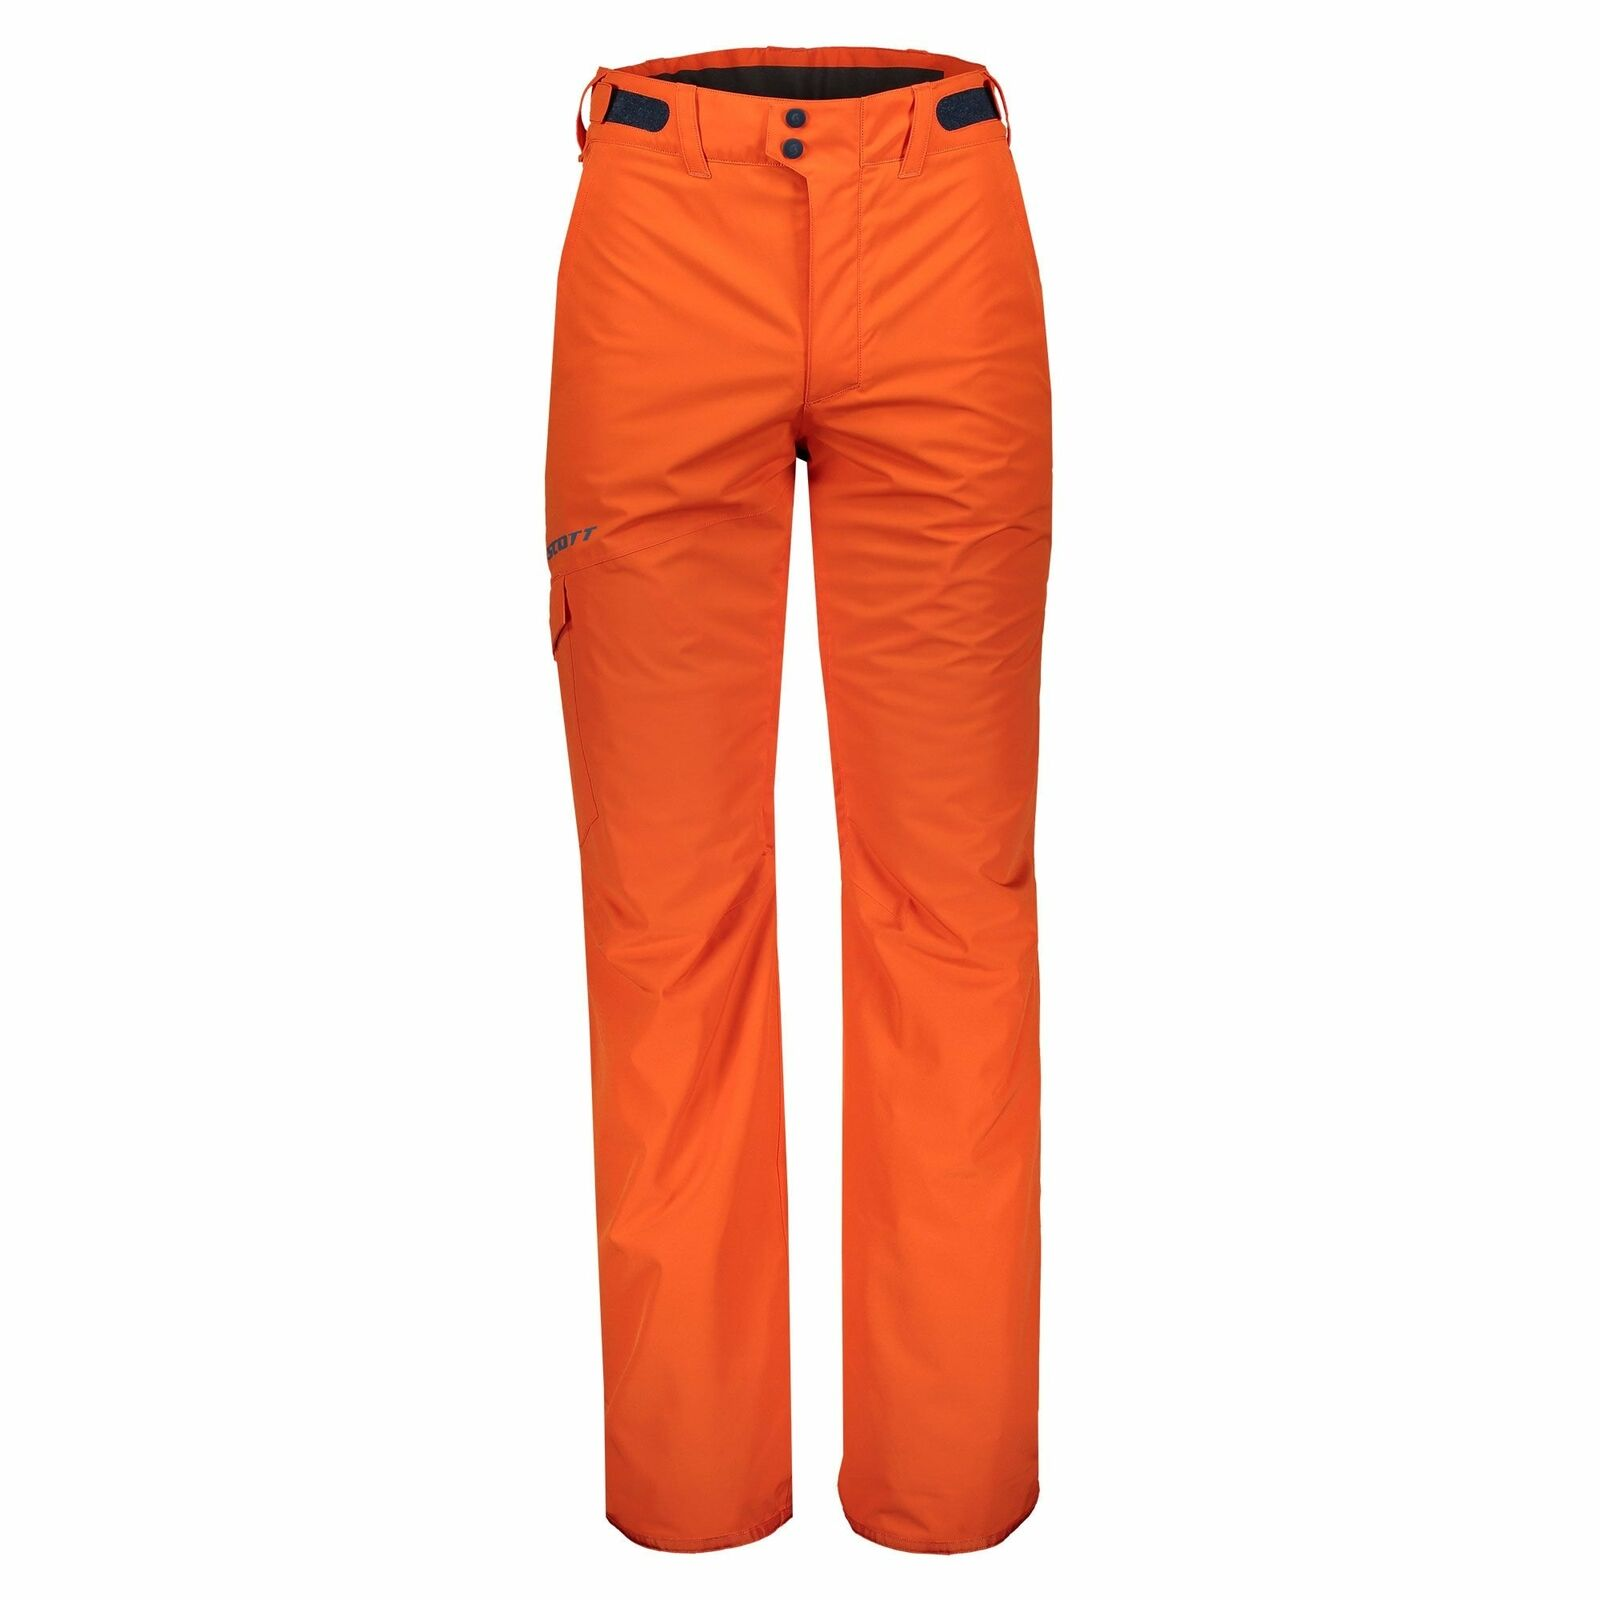 Scott Ultimate Dryo 20 Ski Trousers